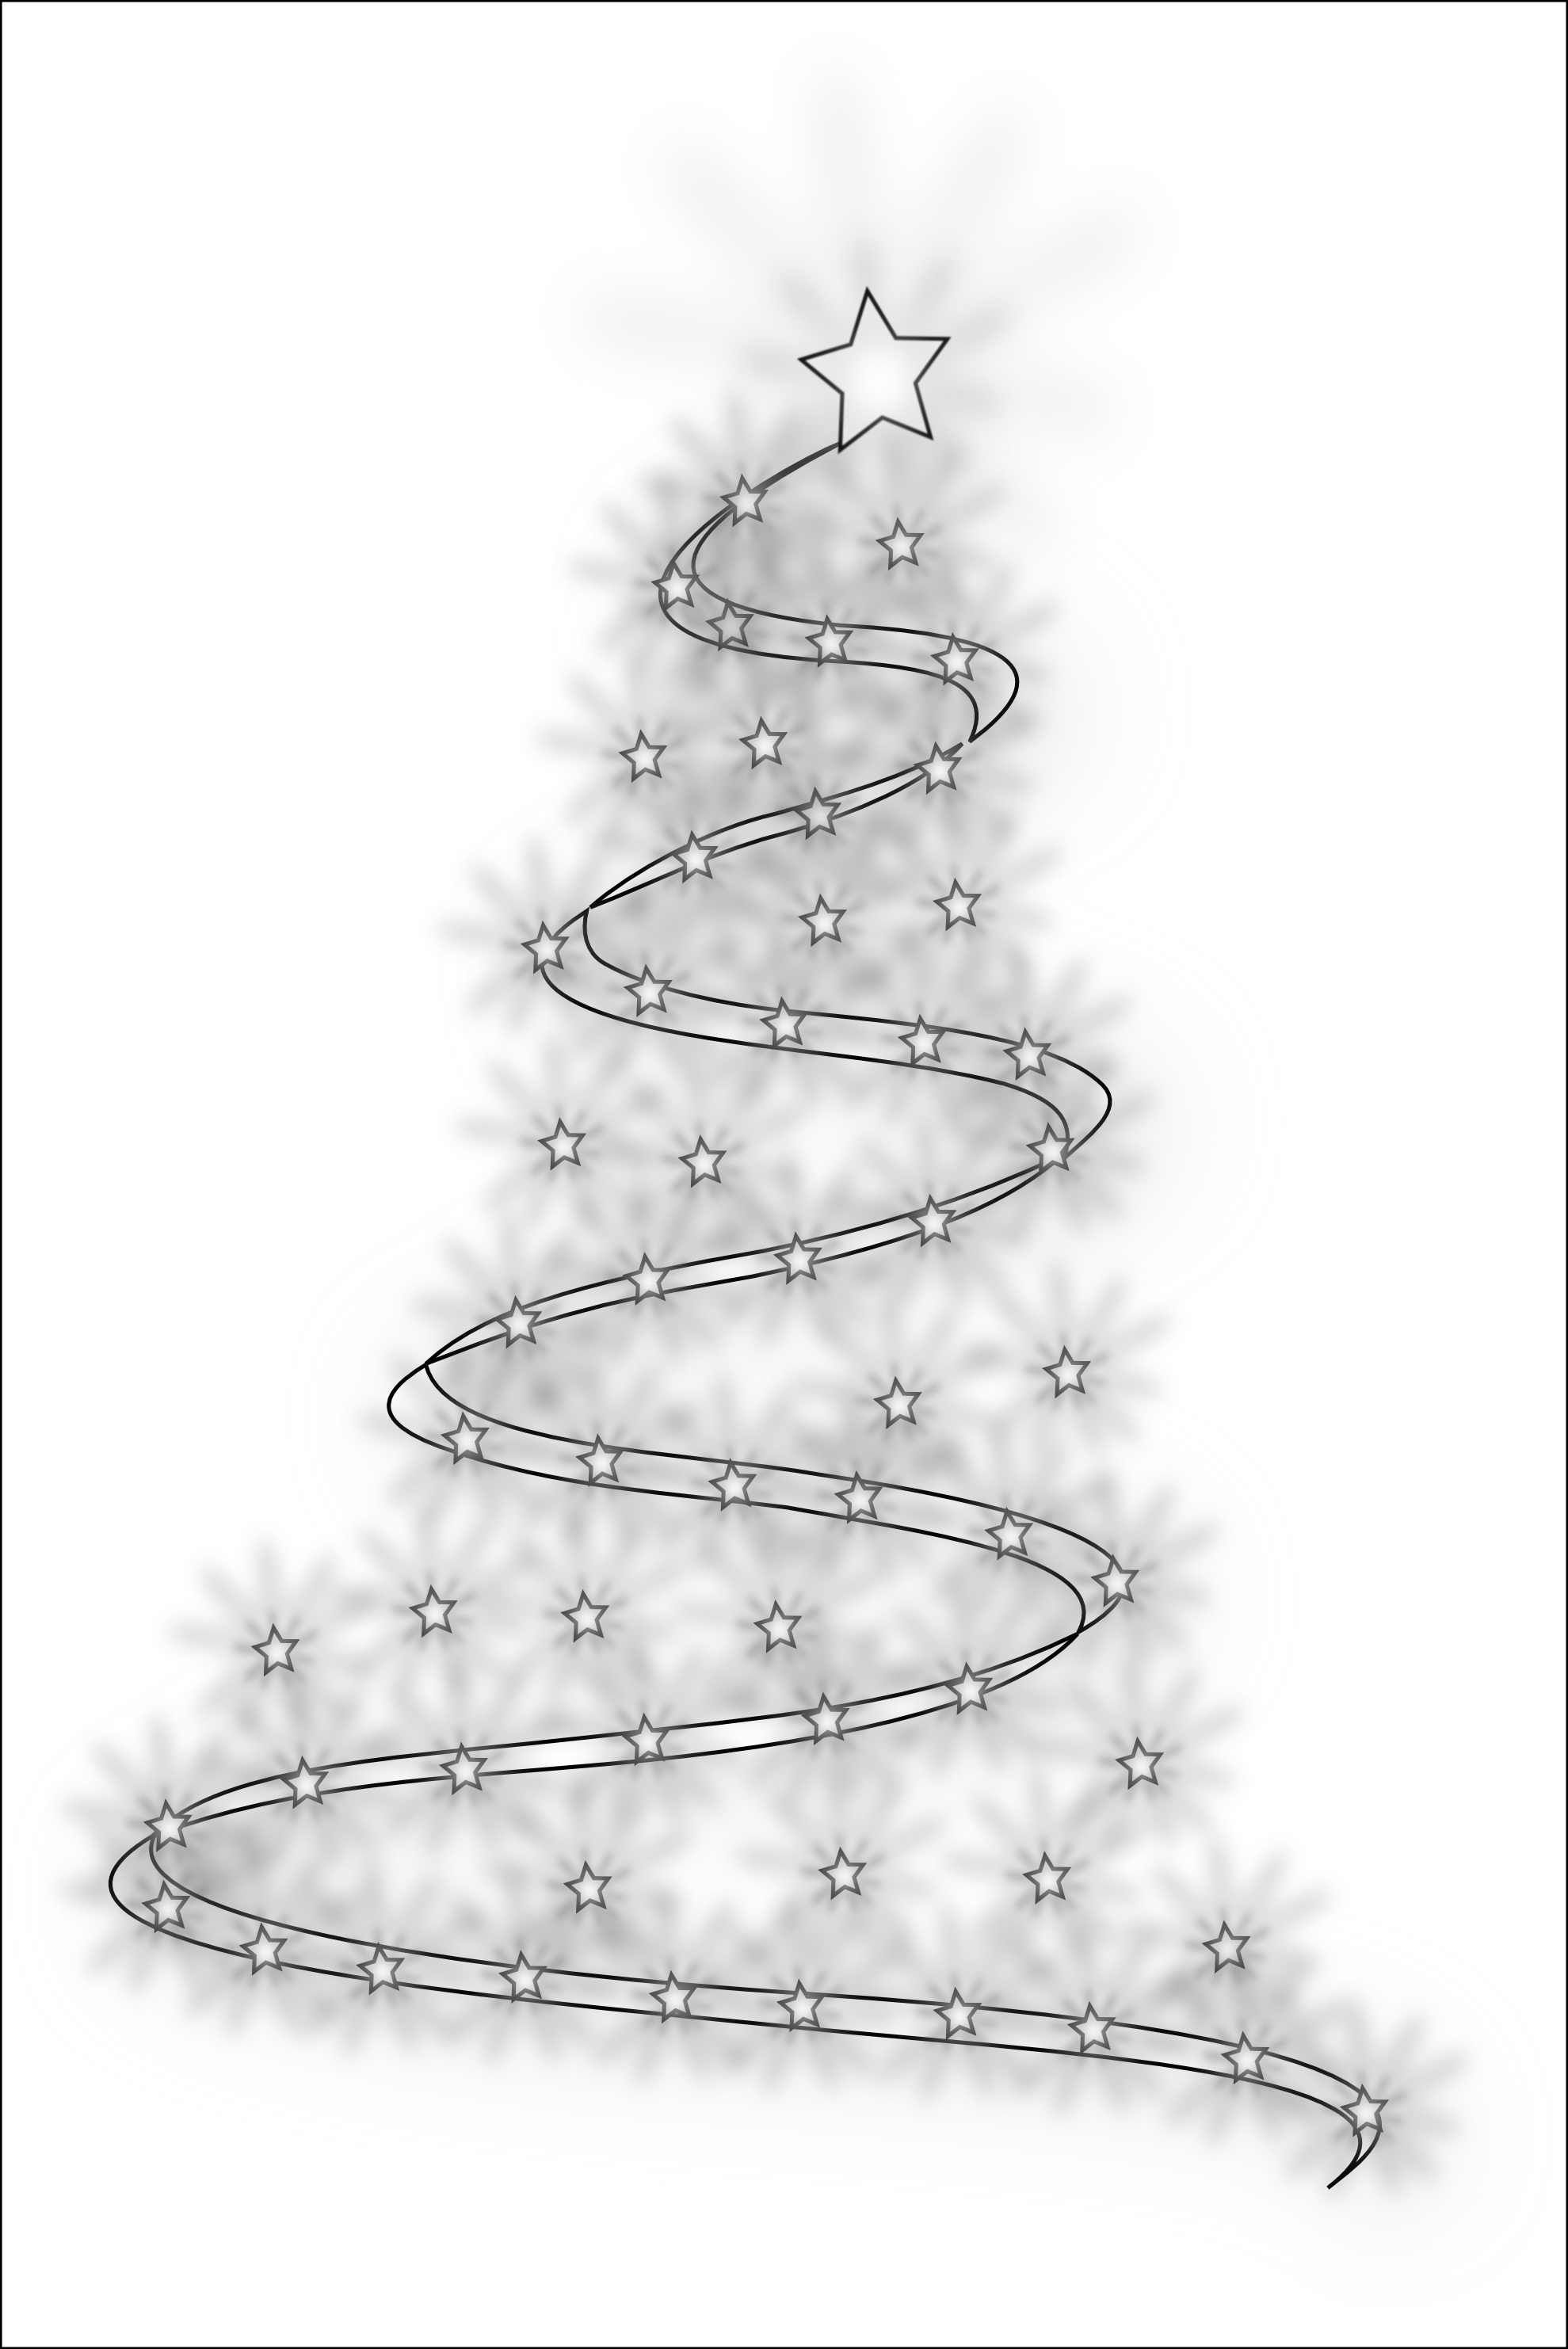 coloring christmas clipart black and white best christmas tree clipart black and white 14632 white black and clipart coloring christmas